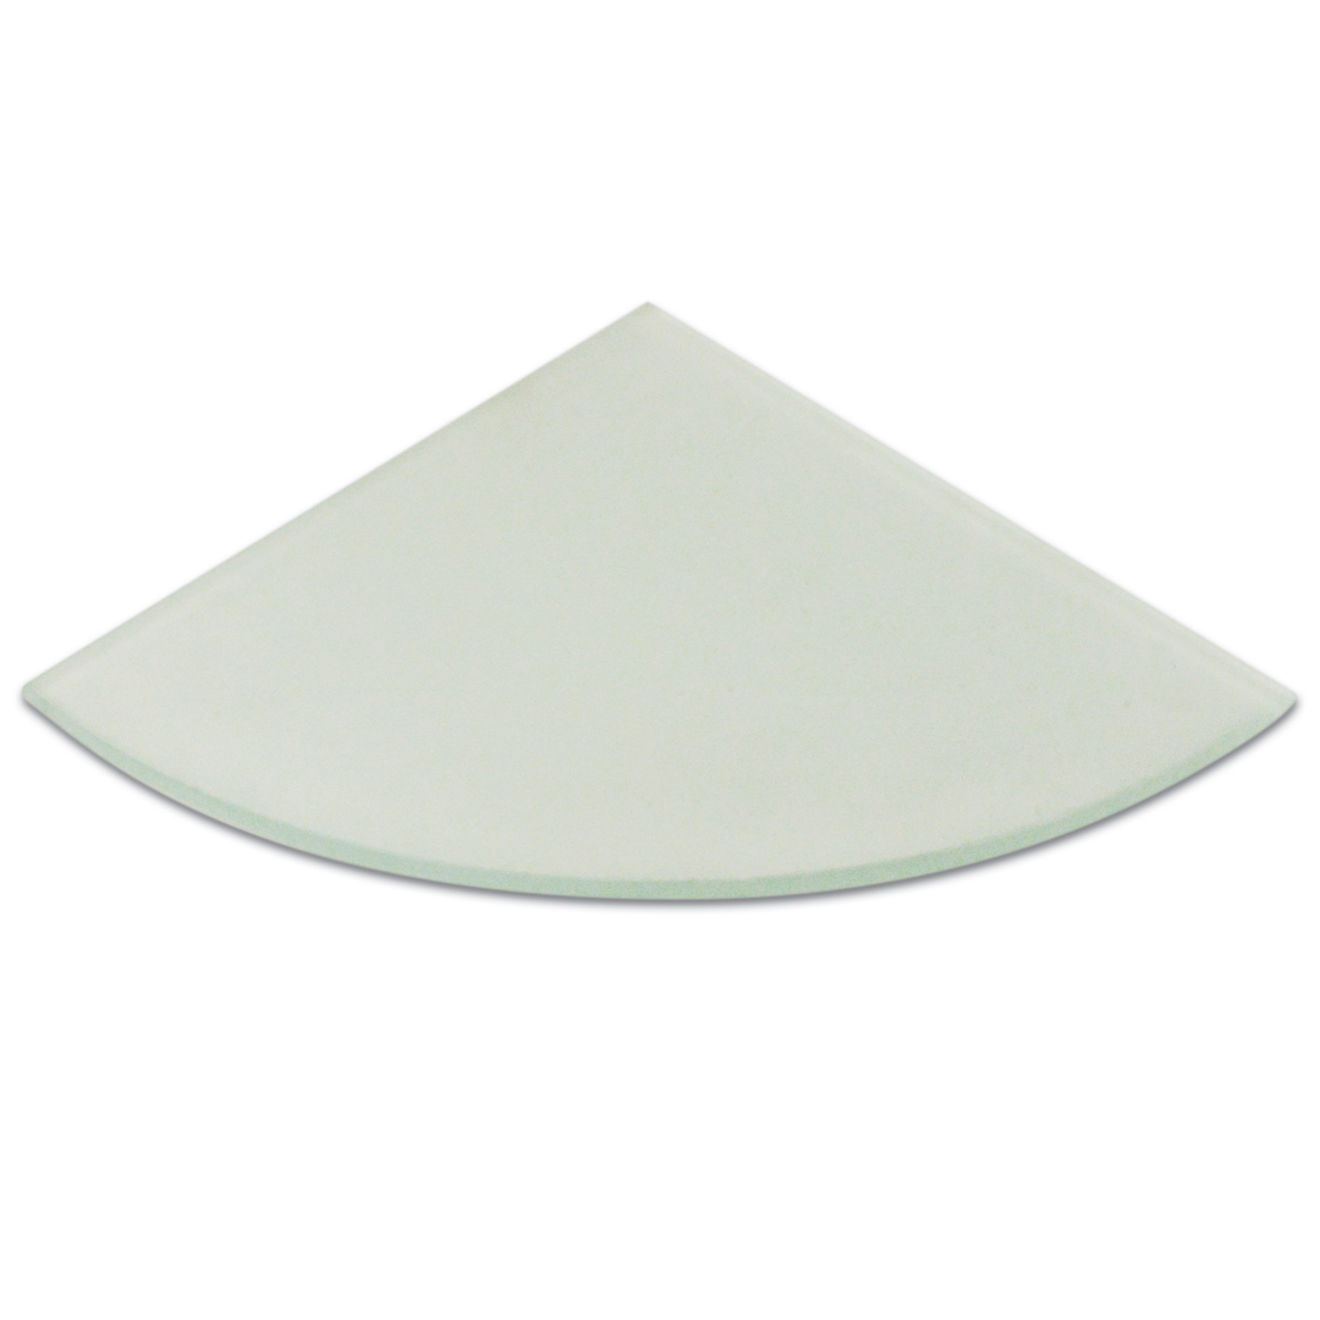 Accessories Trim in Frosted Glass